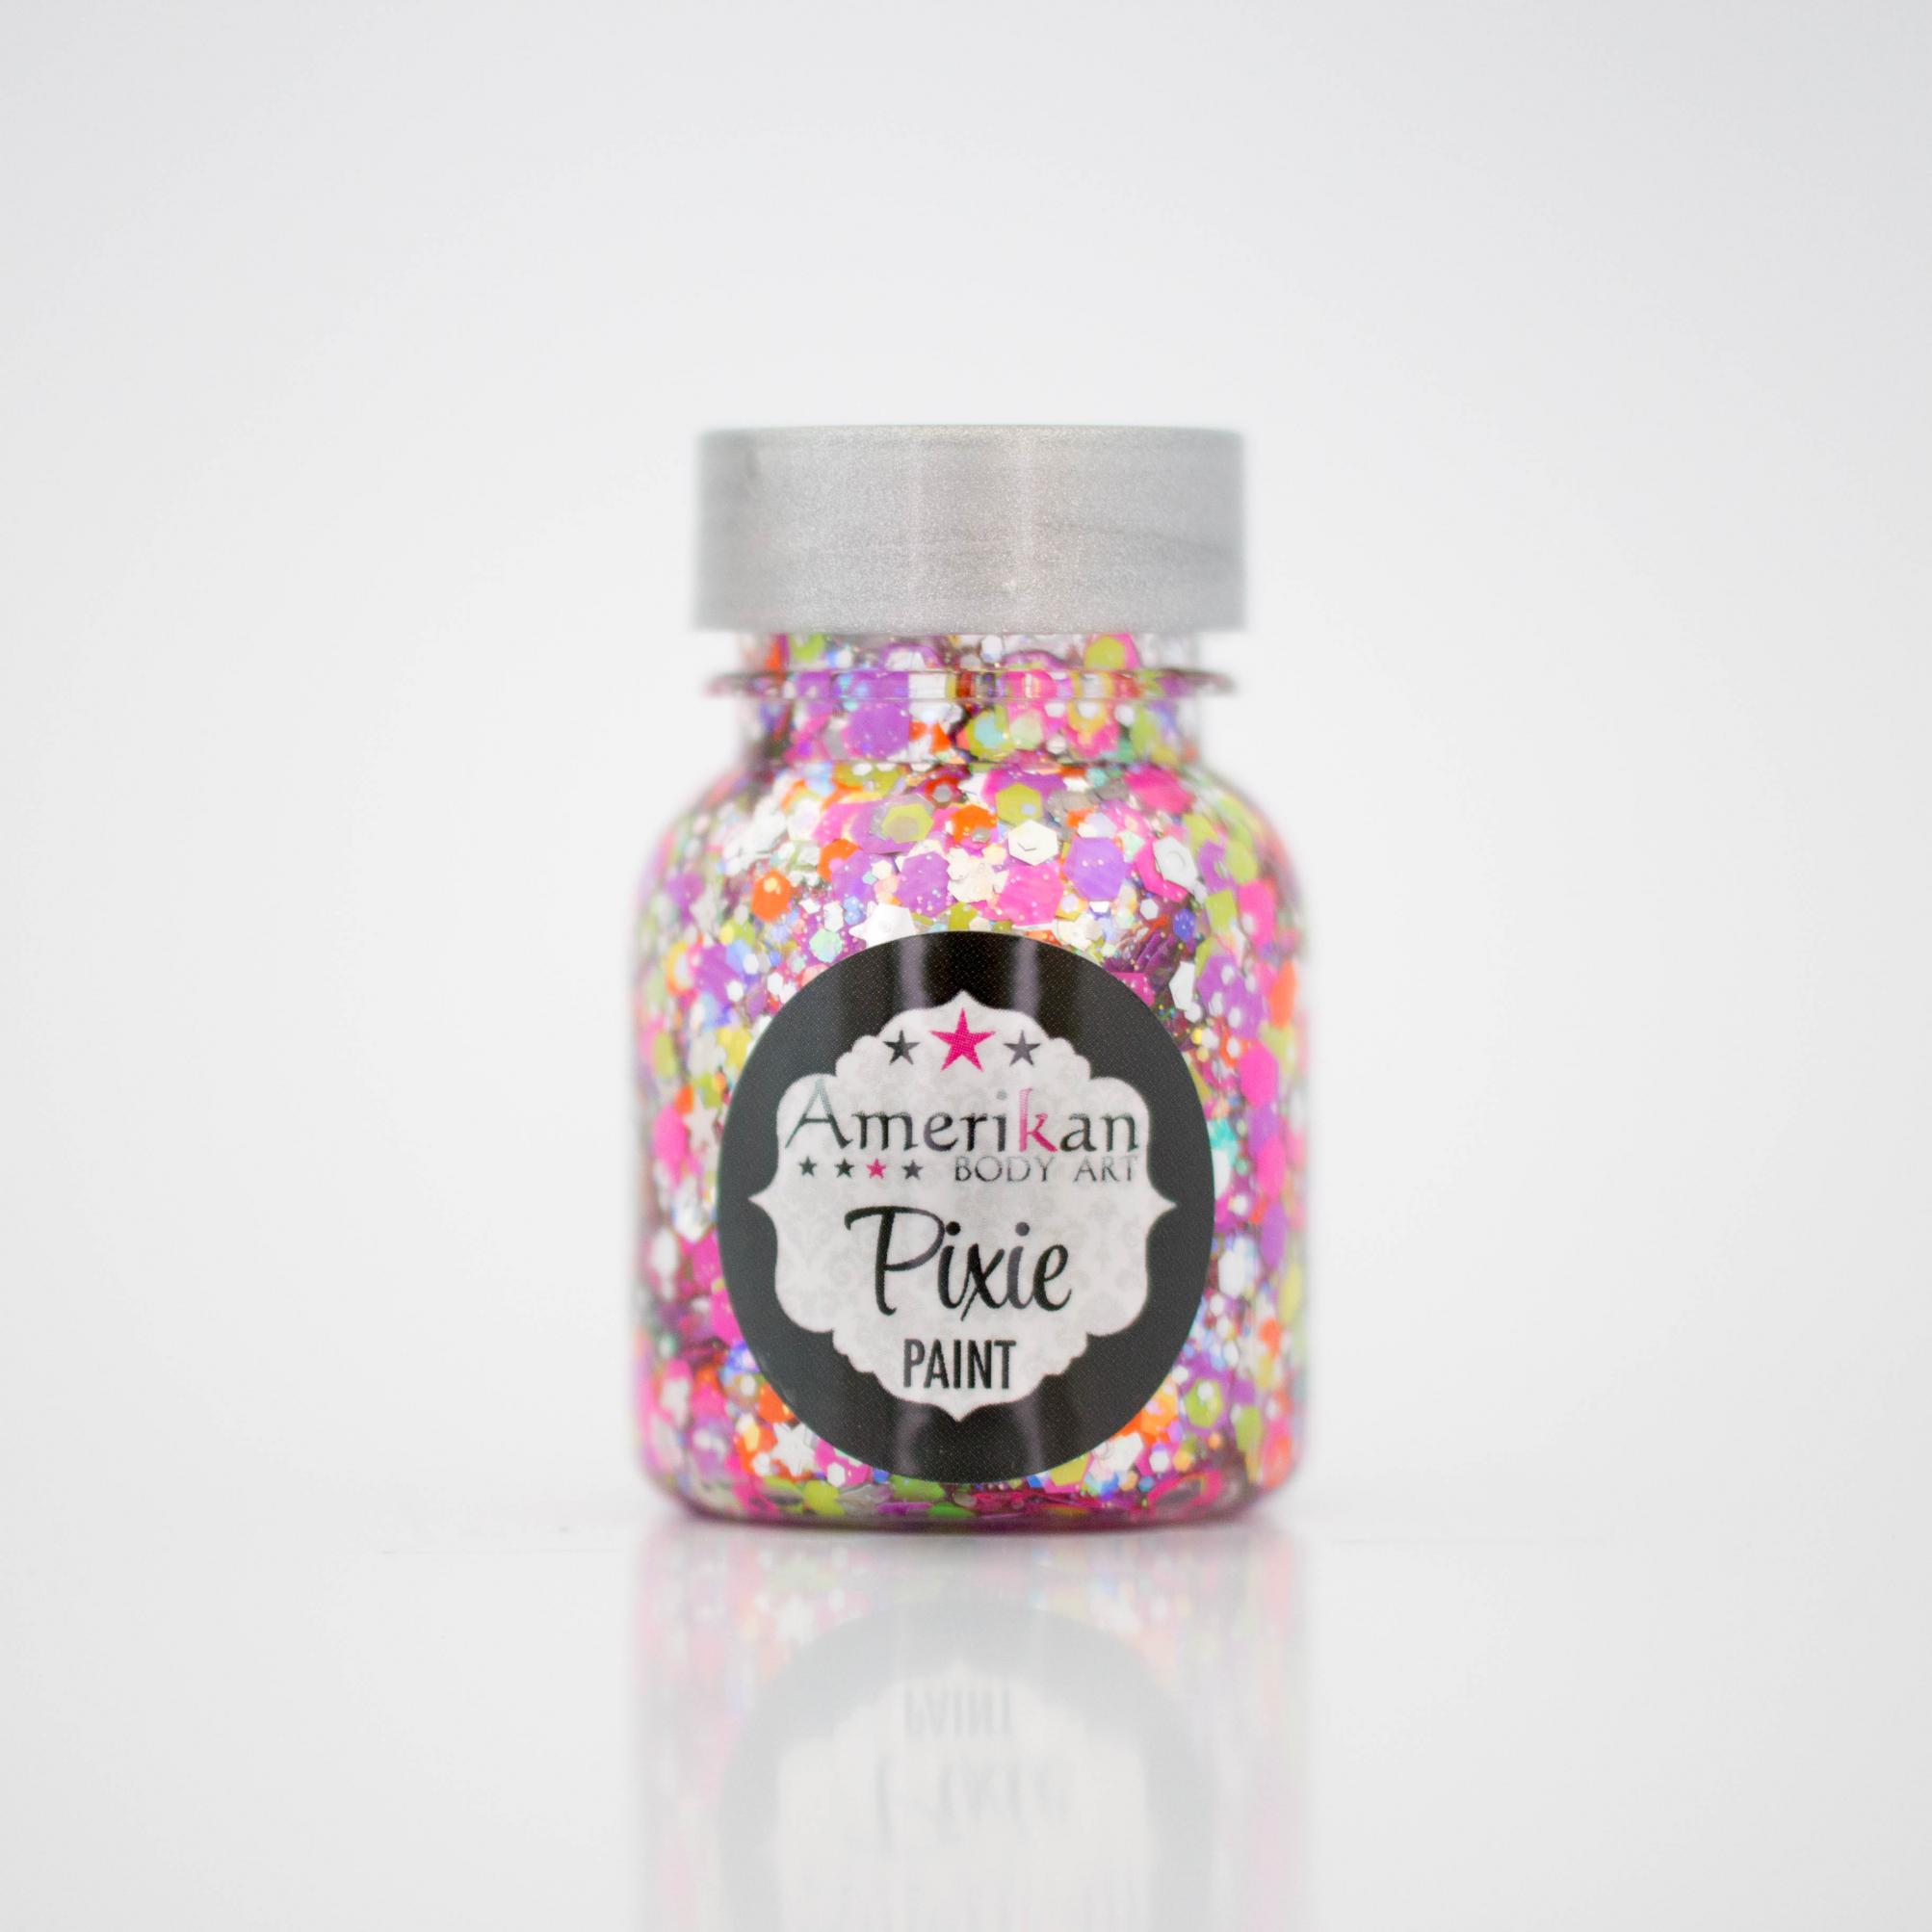 Pixie paint- valley girl 1 oz